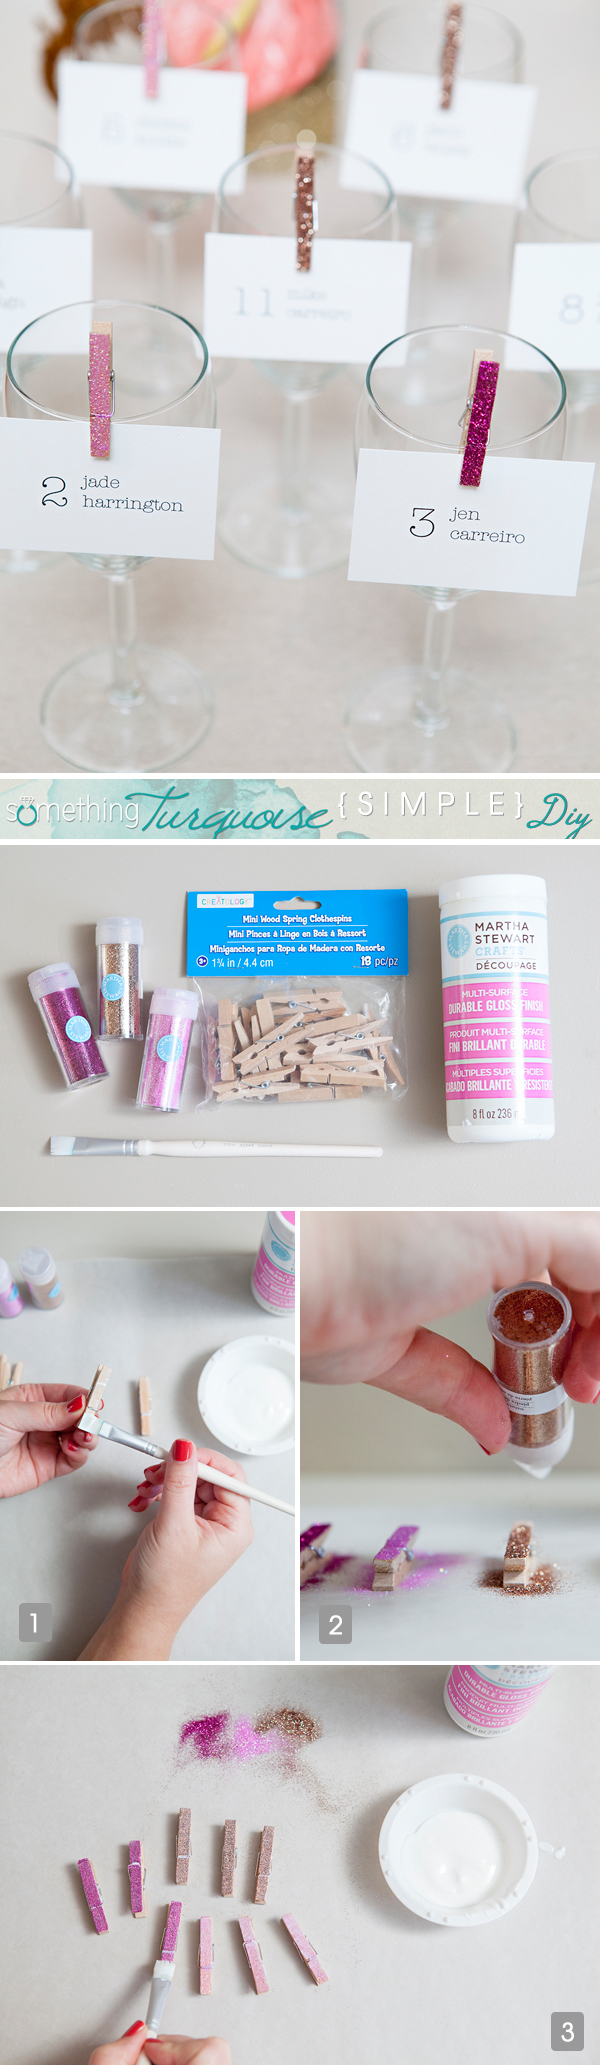 ST_Simple_DIY_Glitter_clothespin_escort_cards